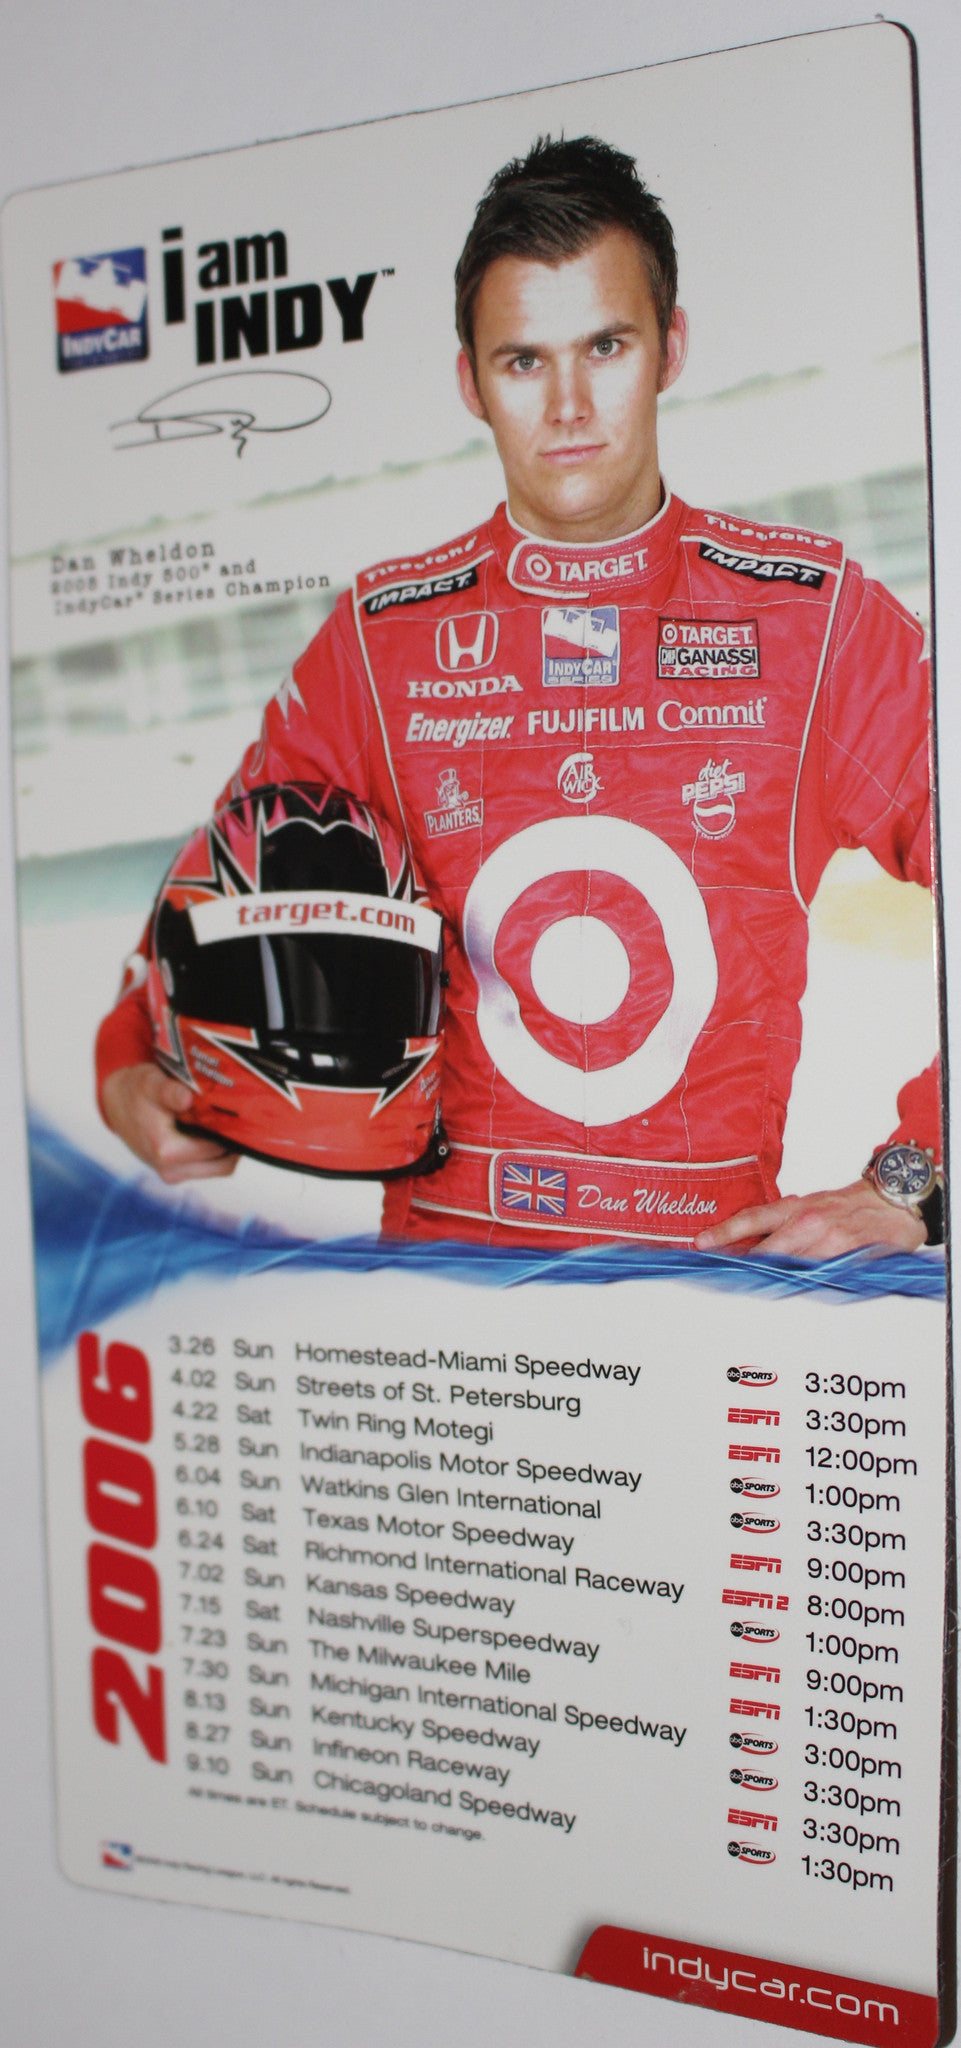 2006 Indy Racing League Magnetic Schedule, Dan Wheldon, I Am Indy - Vintage Indy Sports